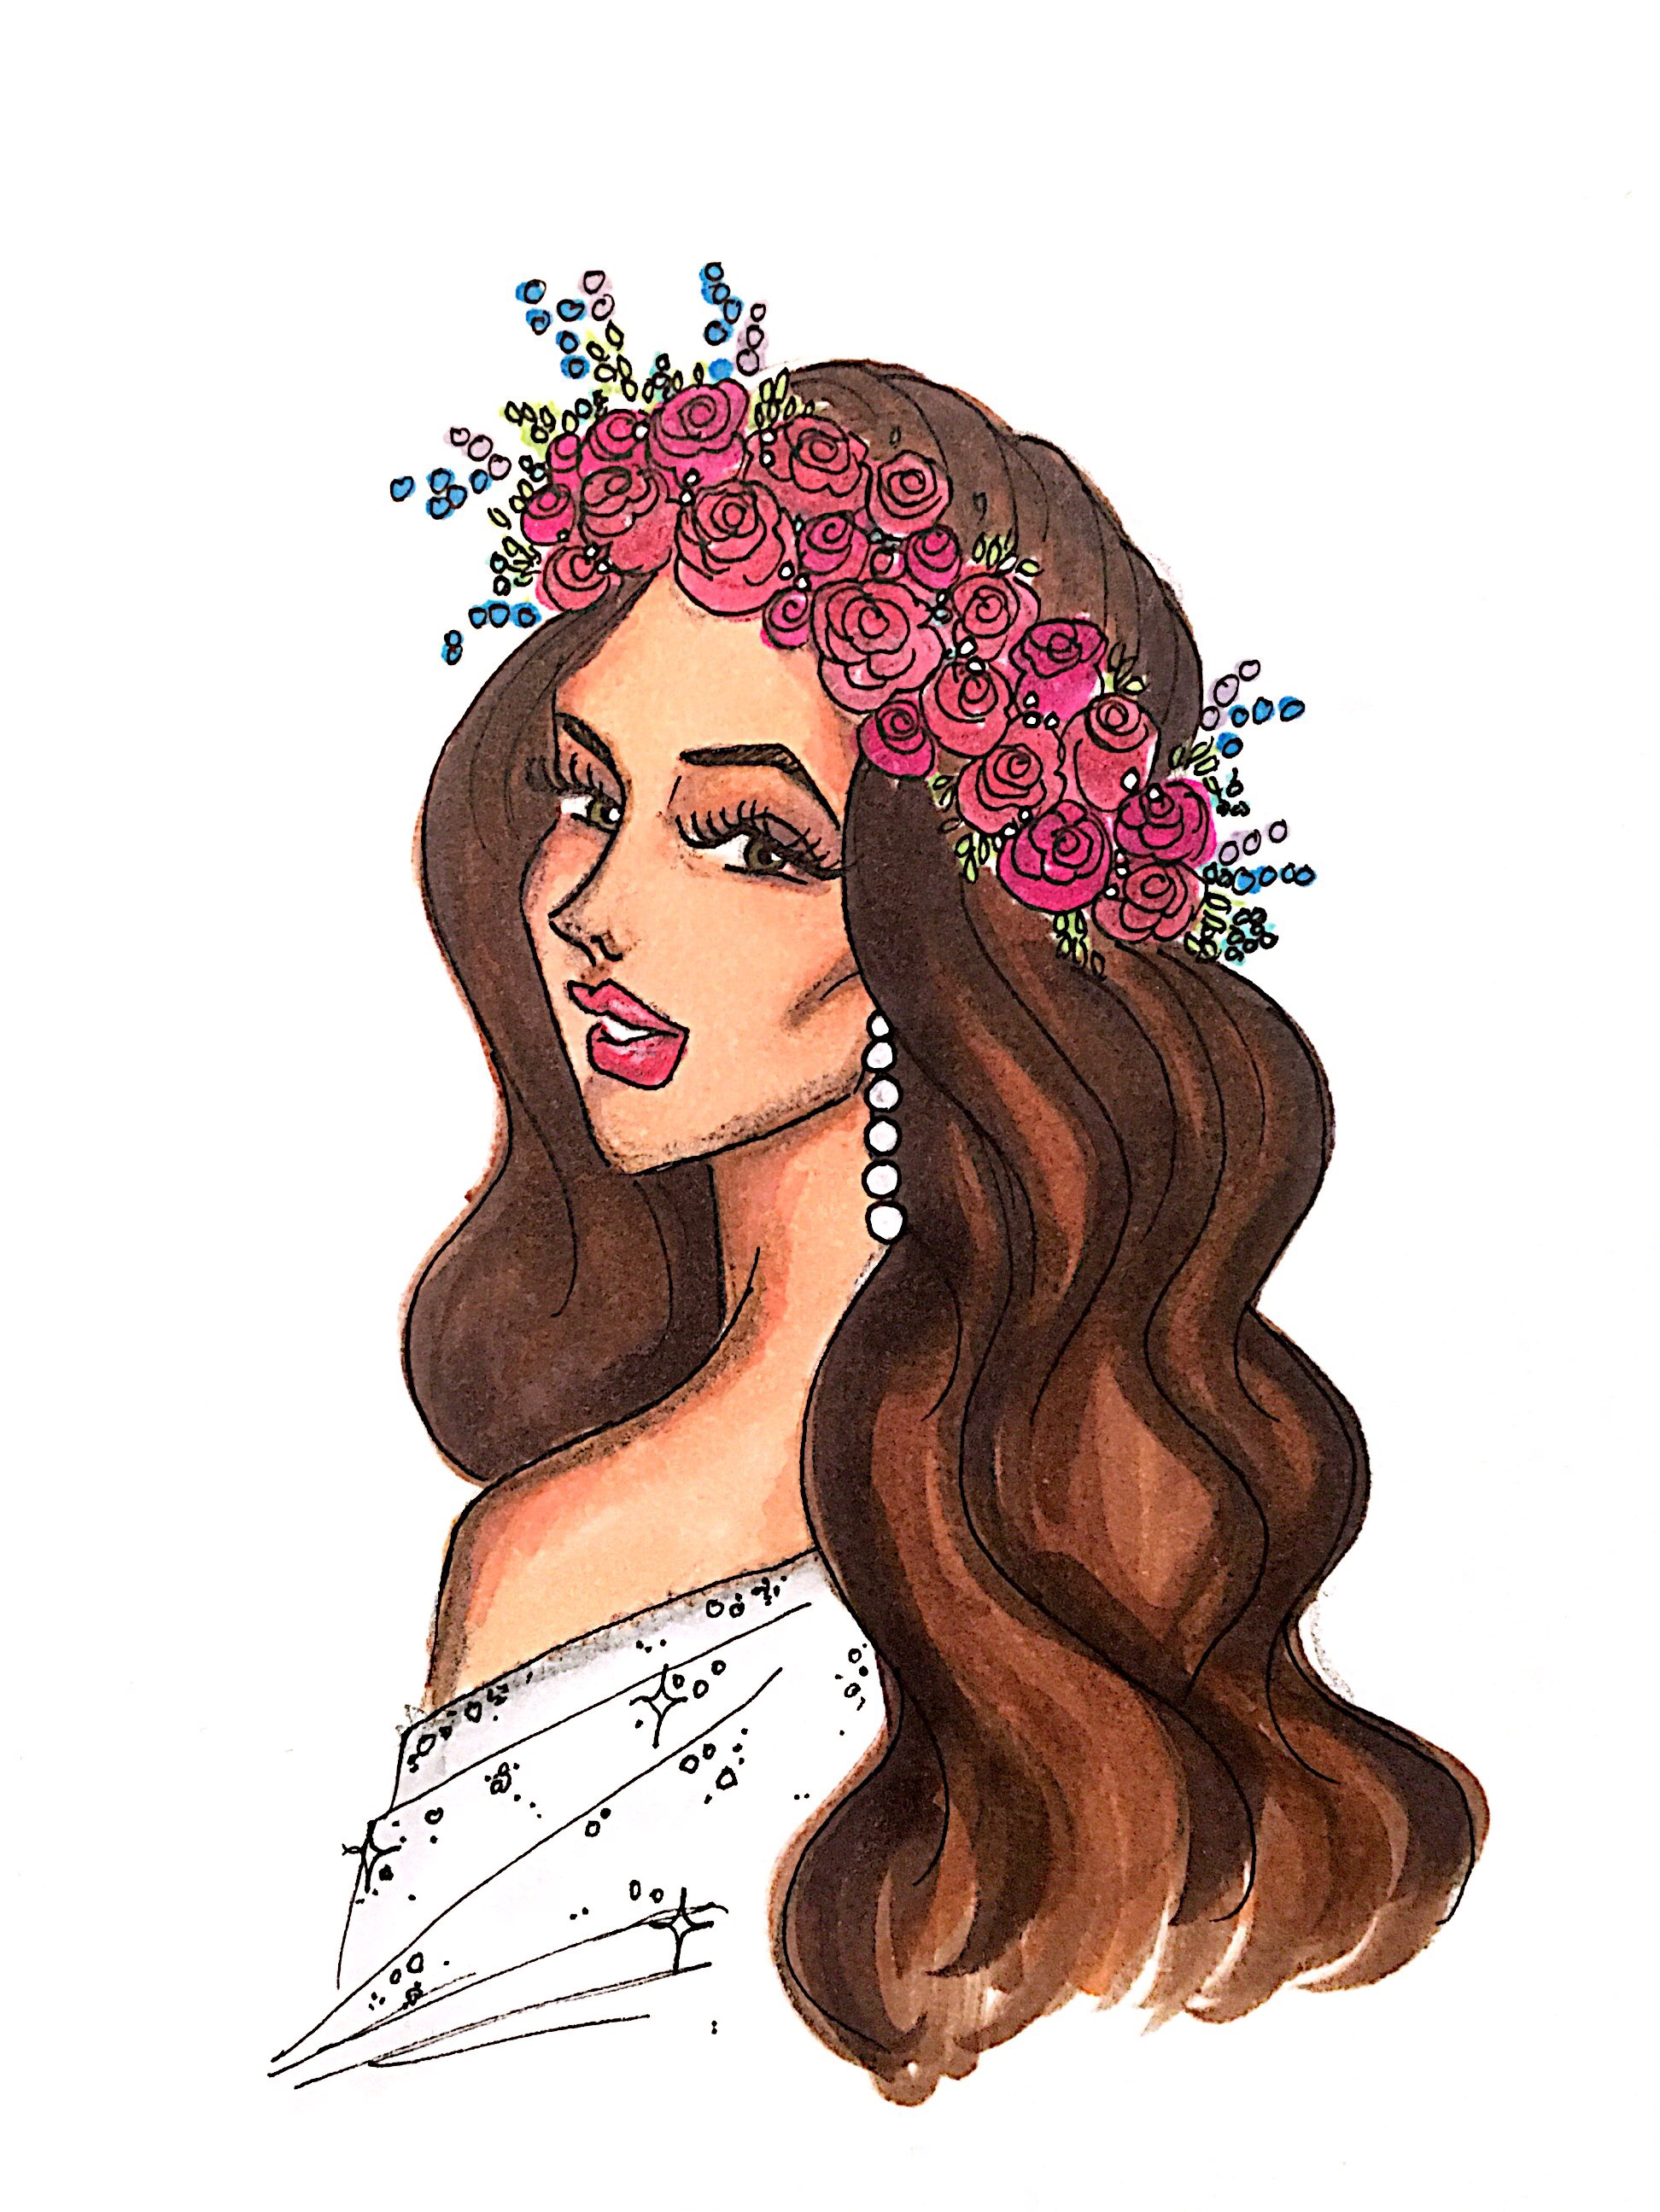 want to commission an original bridal illustration? - Contact me at sara@saranovela.com today for bridal portraits, bridesmaid cards, wedding invitations, etc.